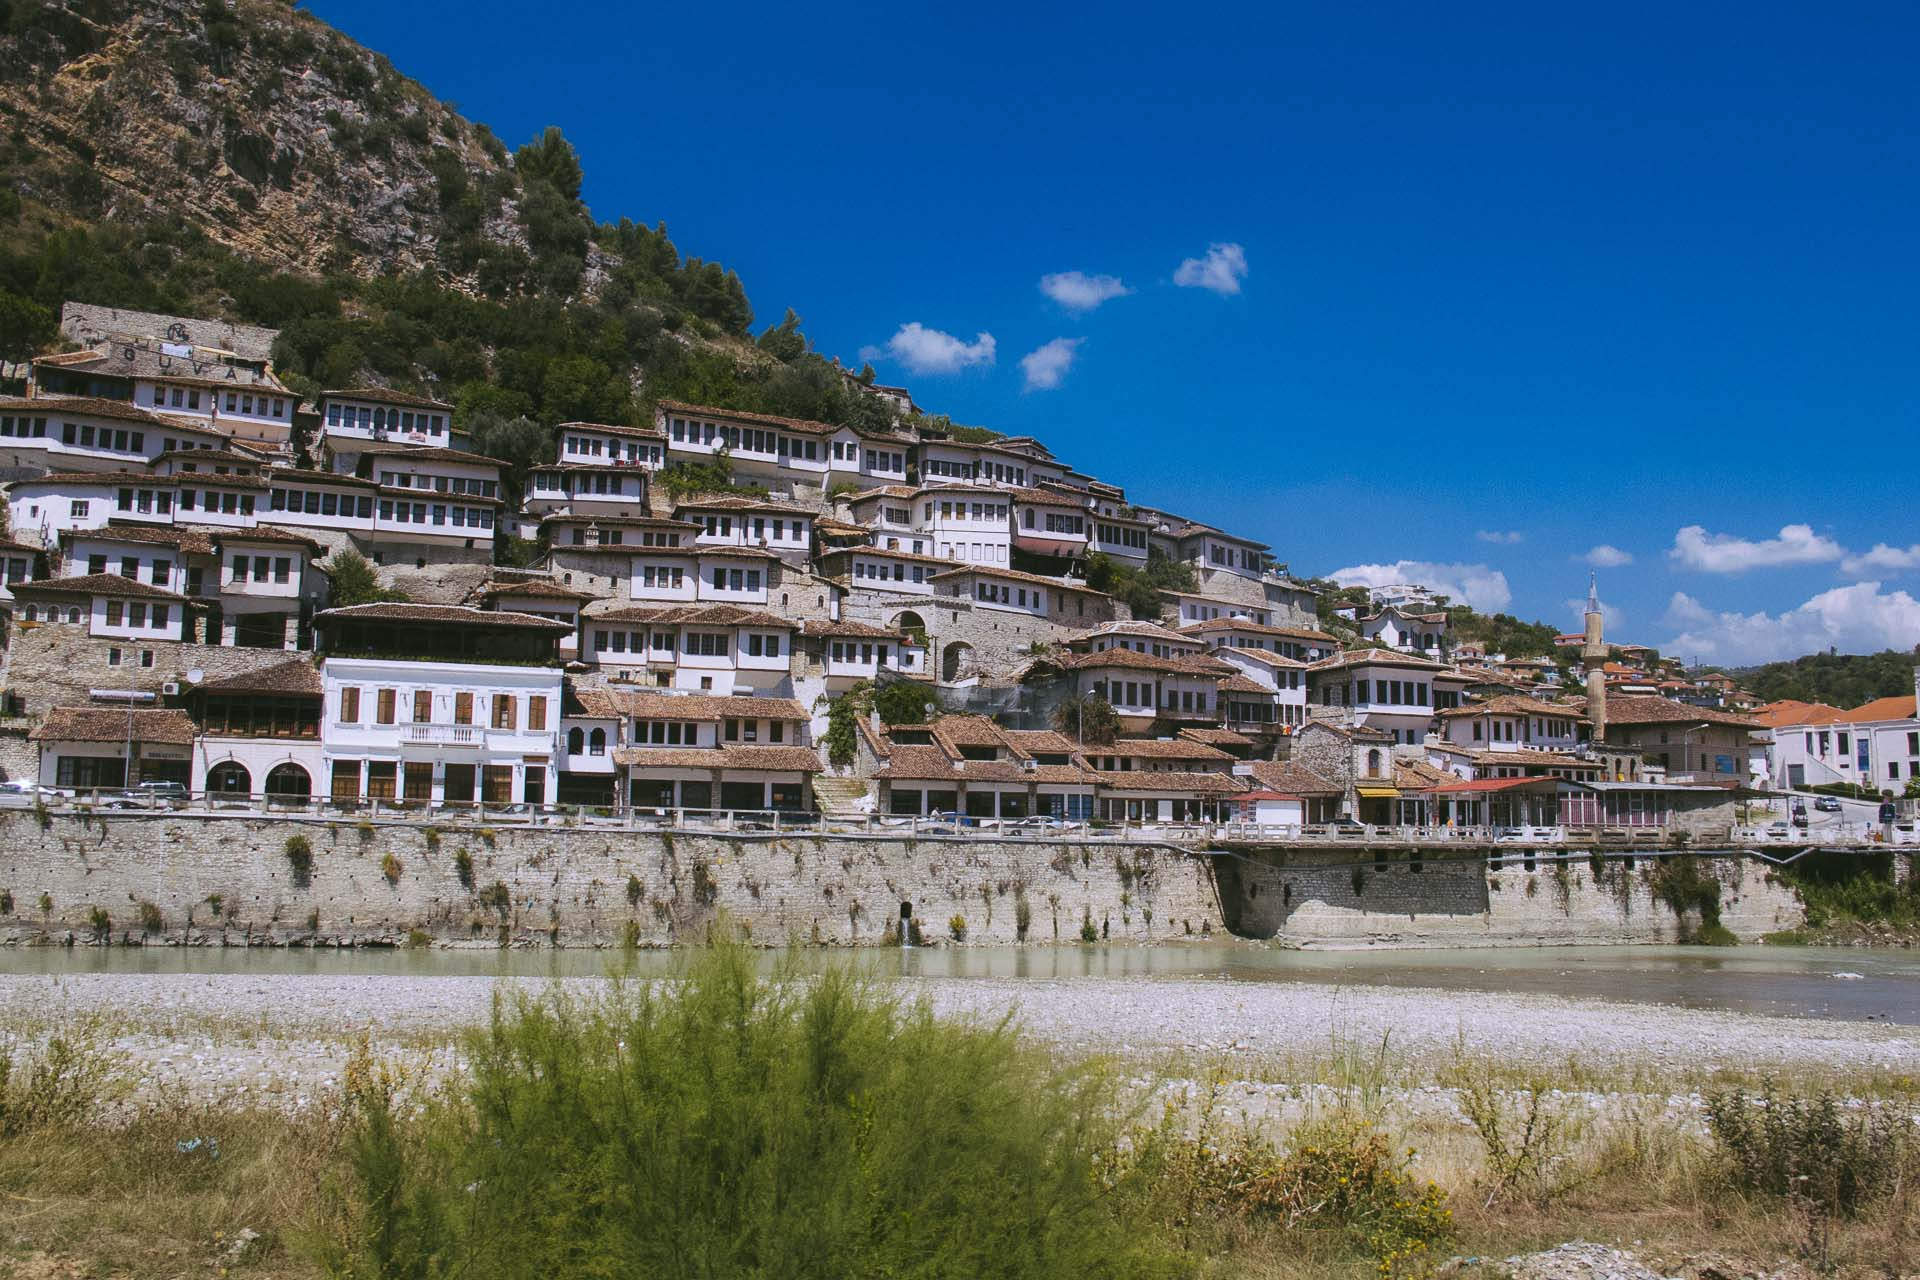 Castle hopping in Berat, Albania